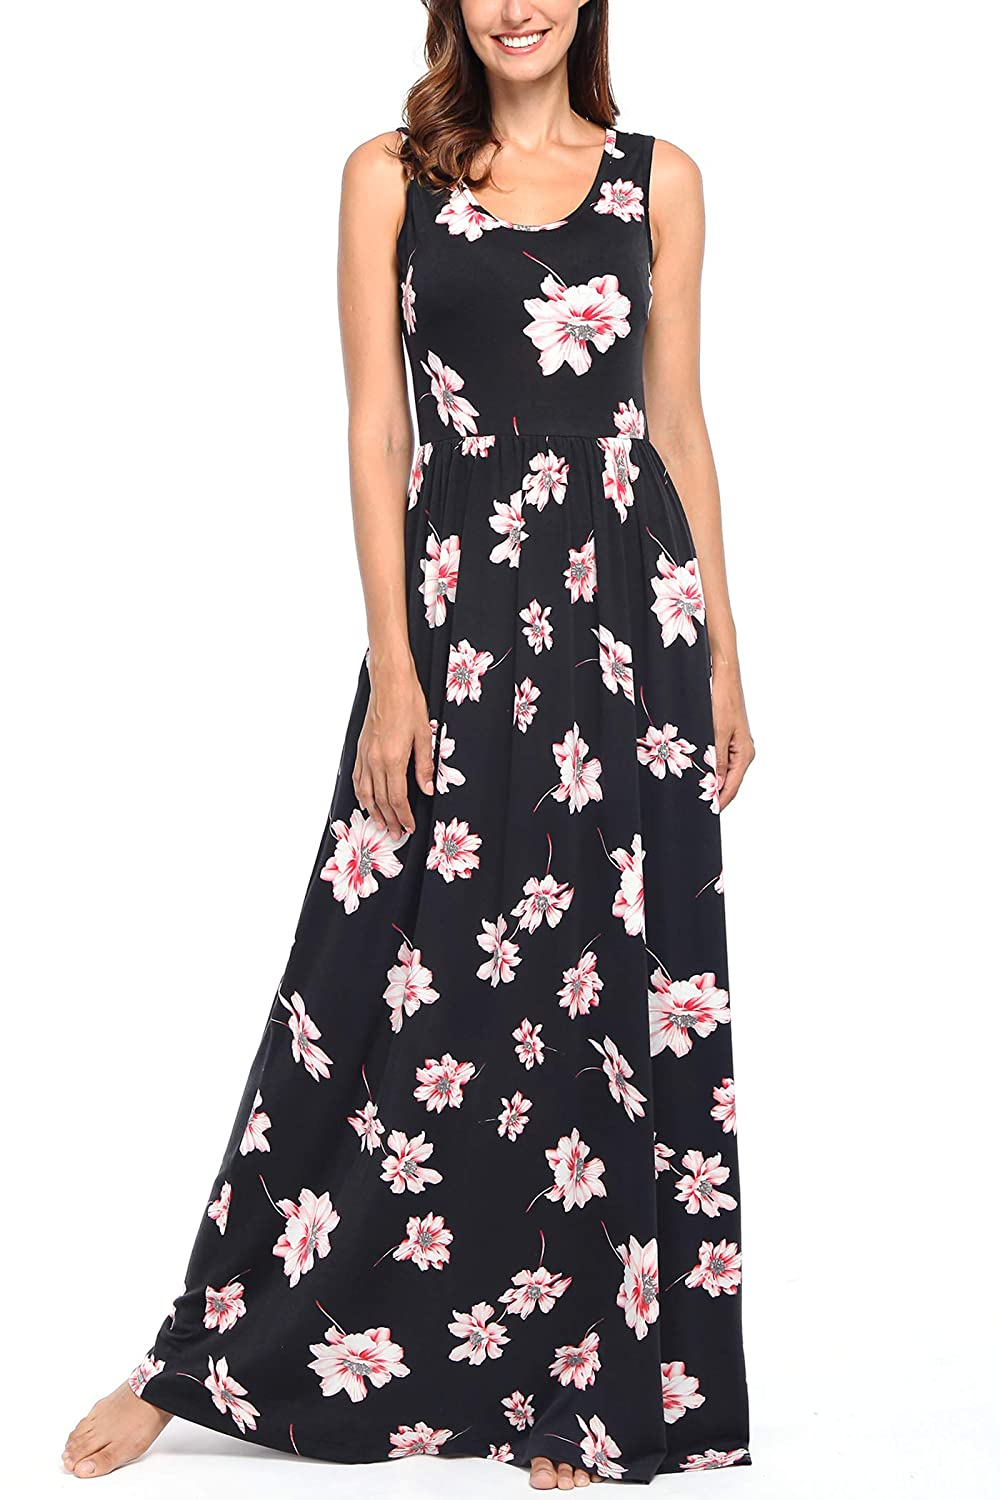 Black  Pink Comila Women's Summer Sleeveless Floral Tank Maxi Dress Casual Long Dress Pocket